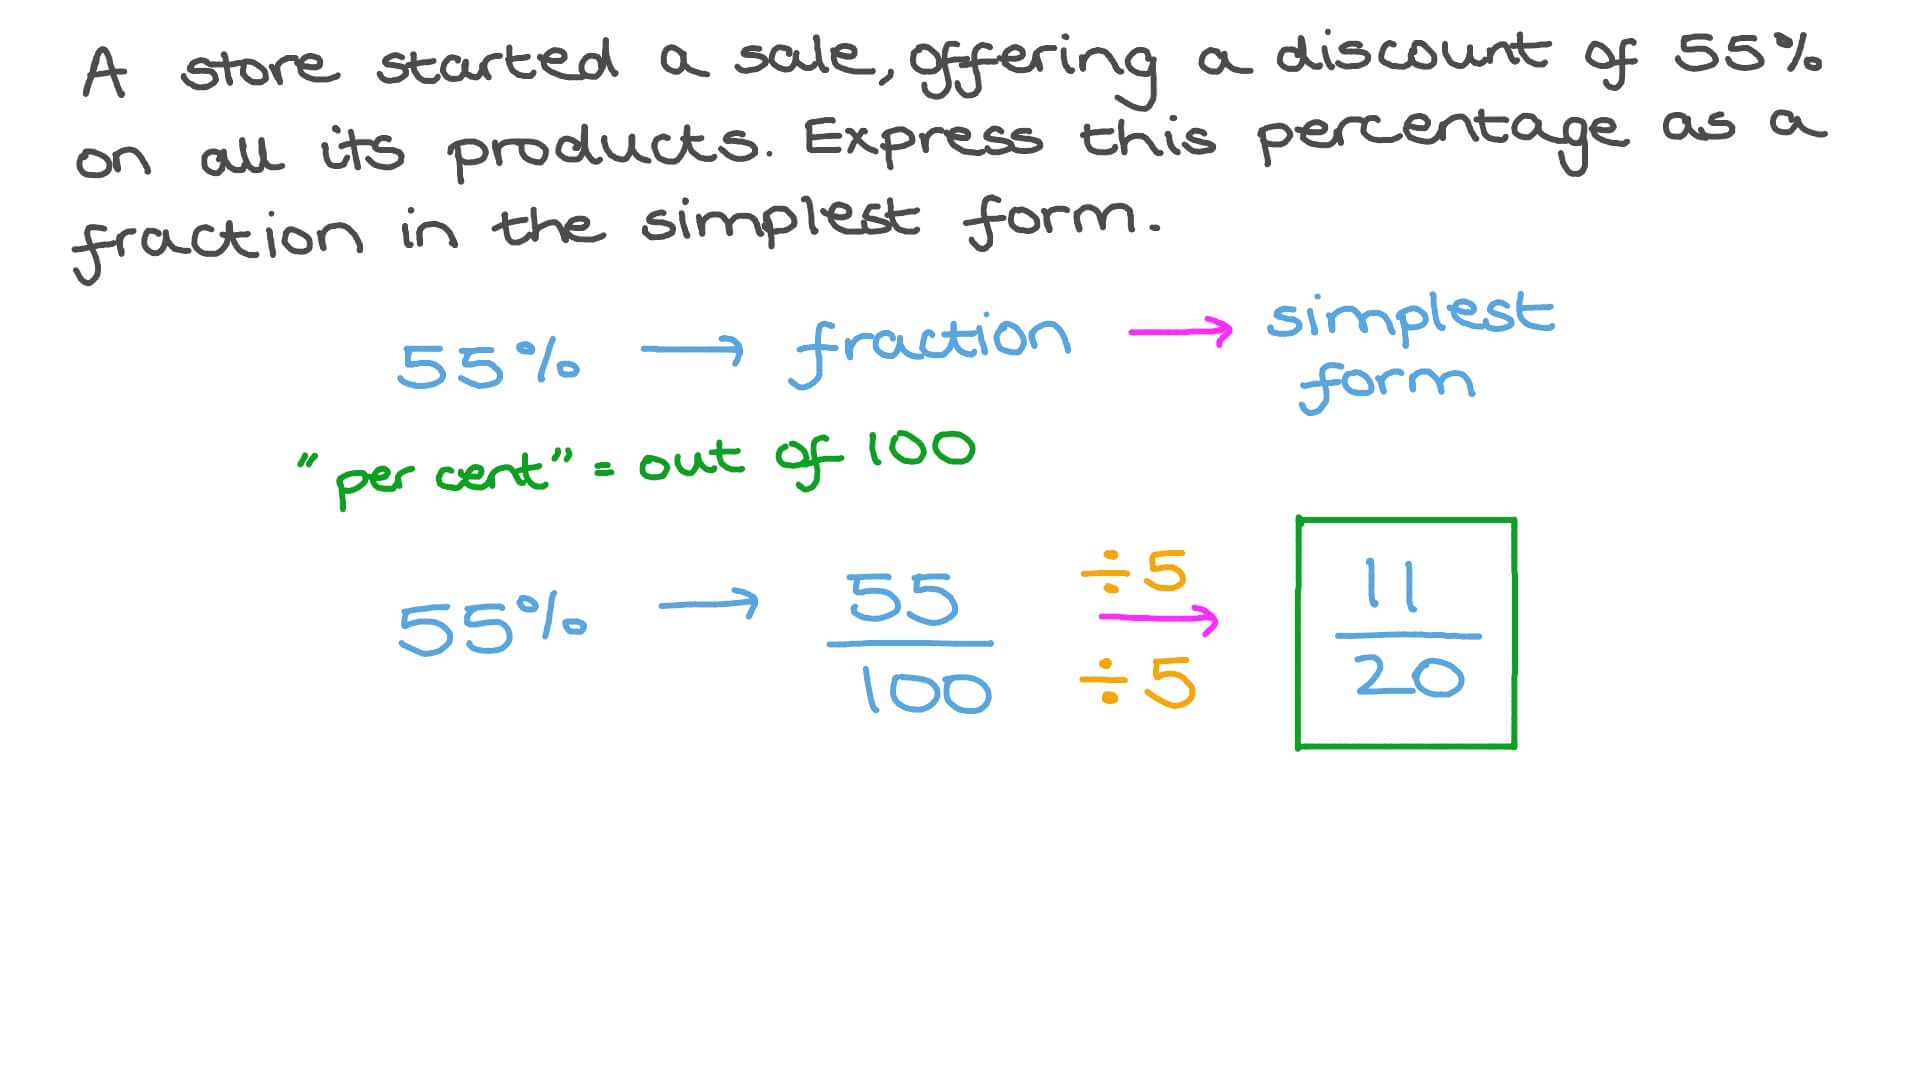 what is simplest form  Converting Percentages to Fractions in the Simplest Form